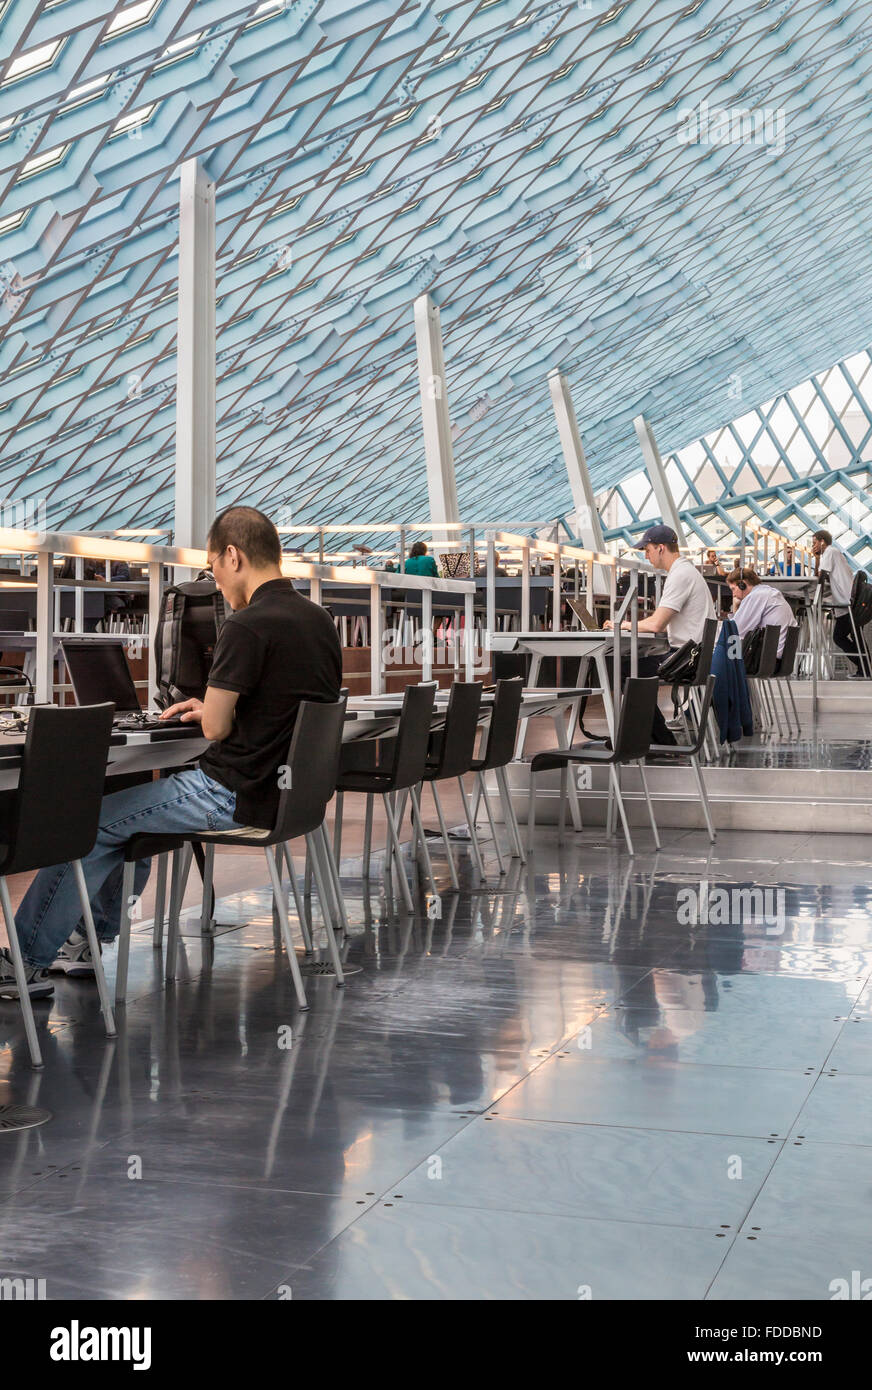 People using laptop computers with wifi at Seattle Central Library, designed by architects Rem Koolhaas and Joshua - Stock Image